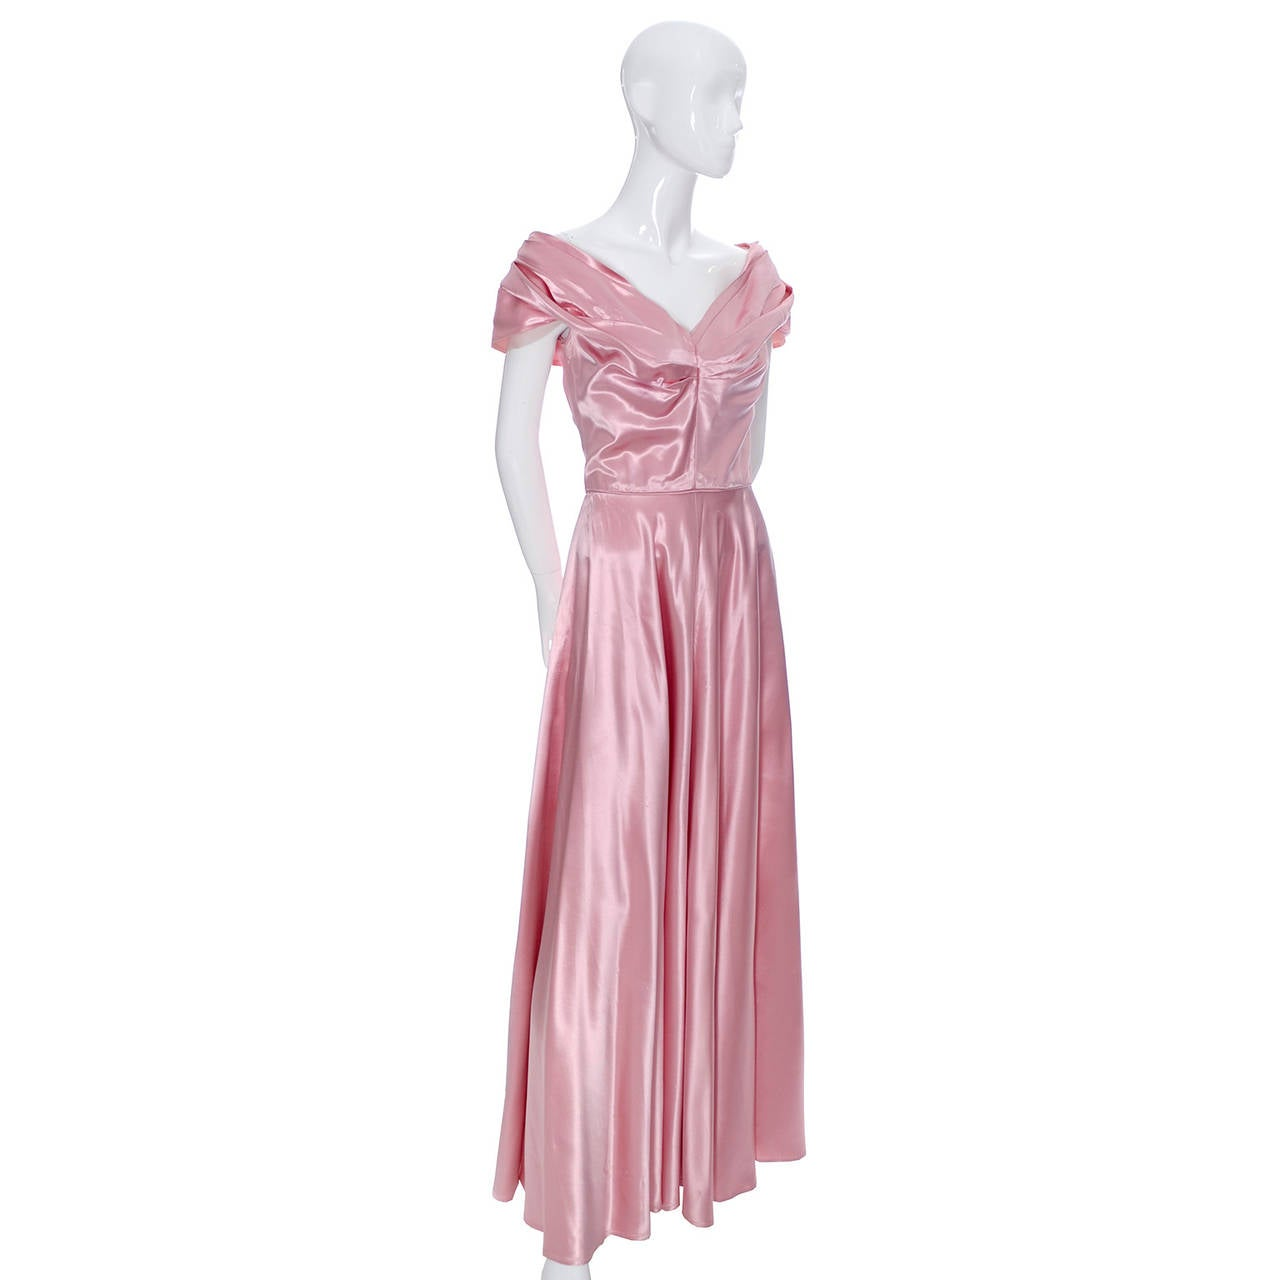 Women's Emma Domb Formal Vintage Dress 1940s Slipper Satin Pink Evening Gown Bridal For Sale